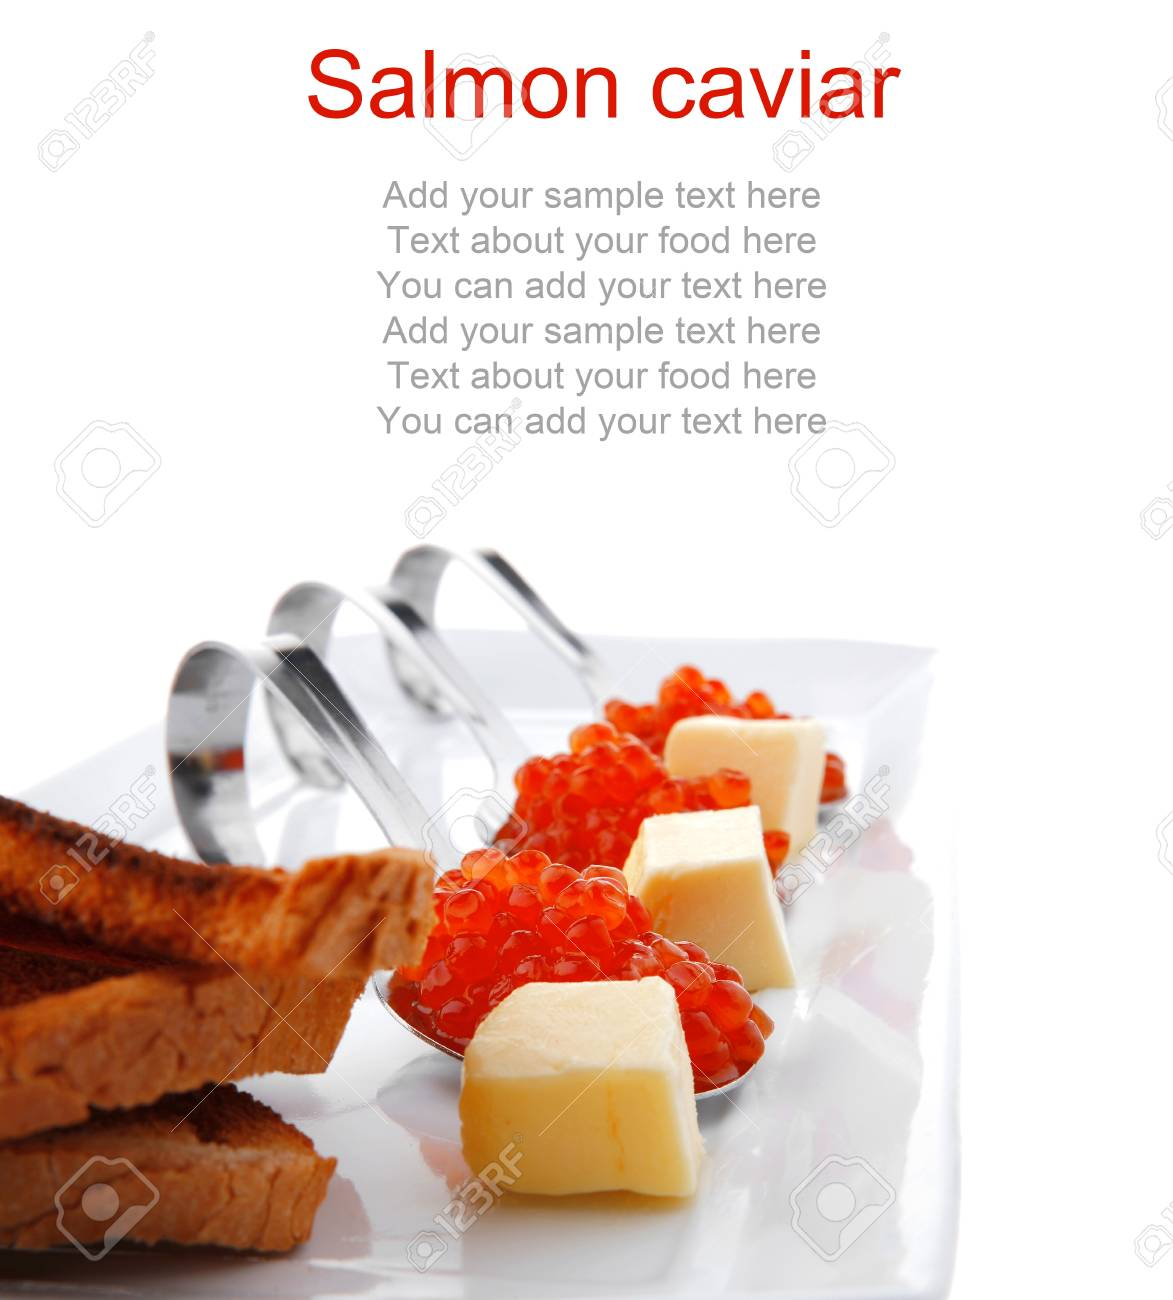 How to salt red caviar